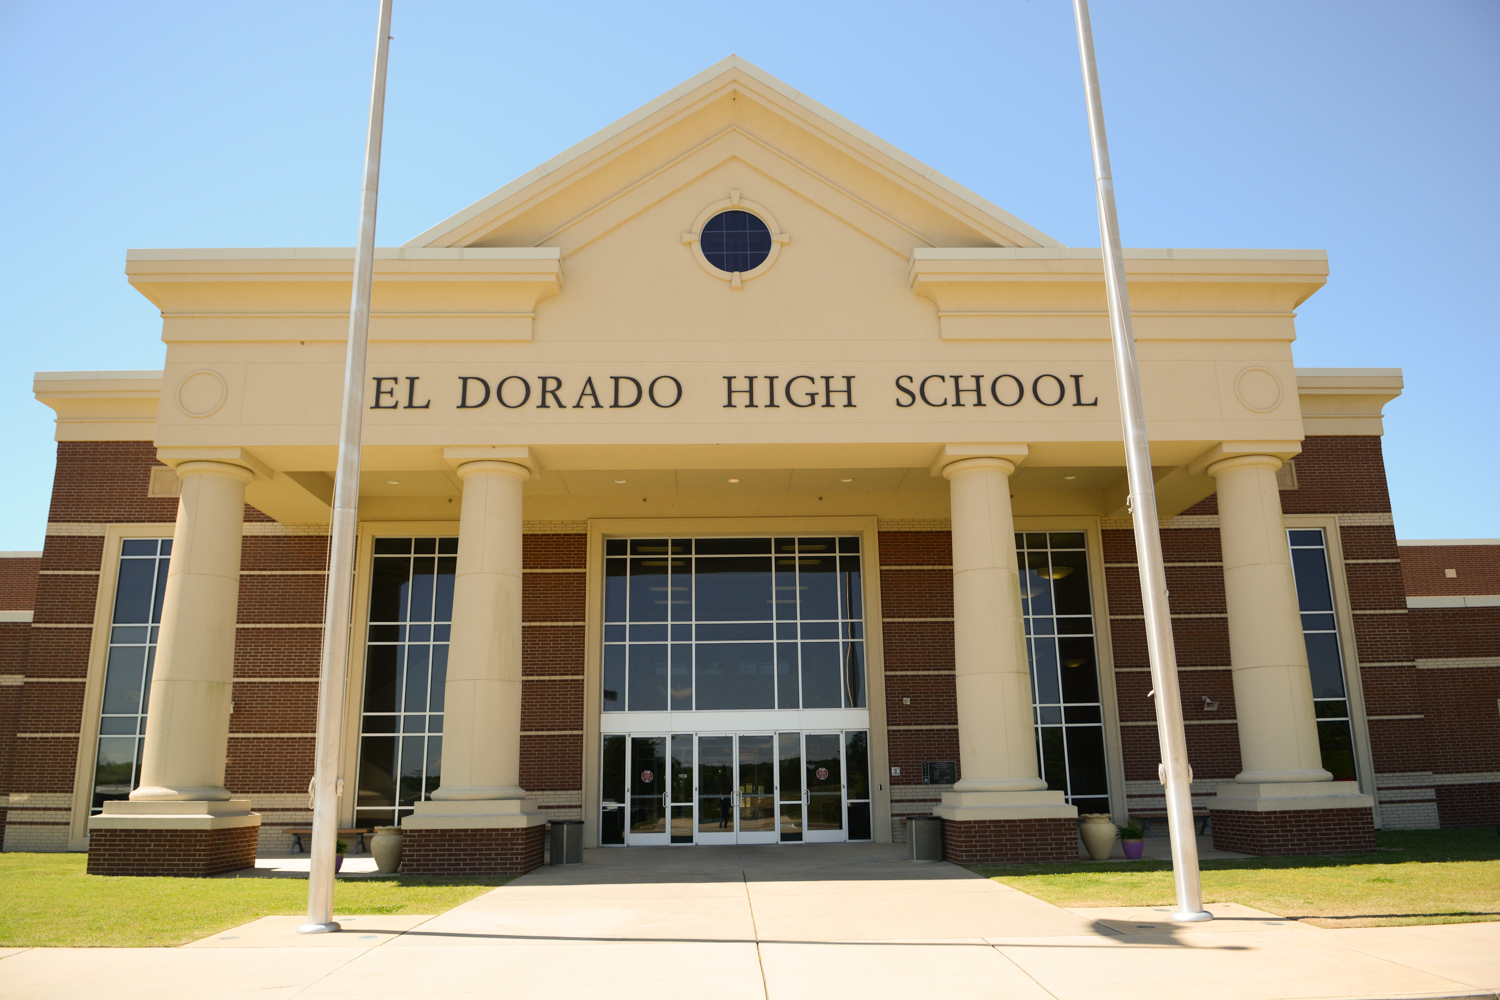 El Dorado Public Schools USD 490 | 124 West Central Ave. | El Dorado, KS  67042 | Phone: 316-322-4800 | FAX: 316-322-4801 | Login